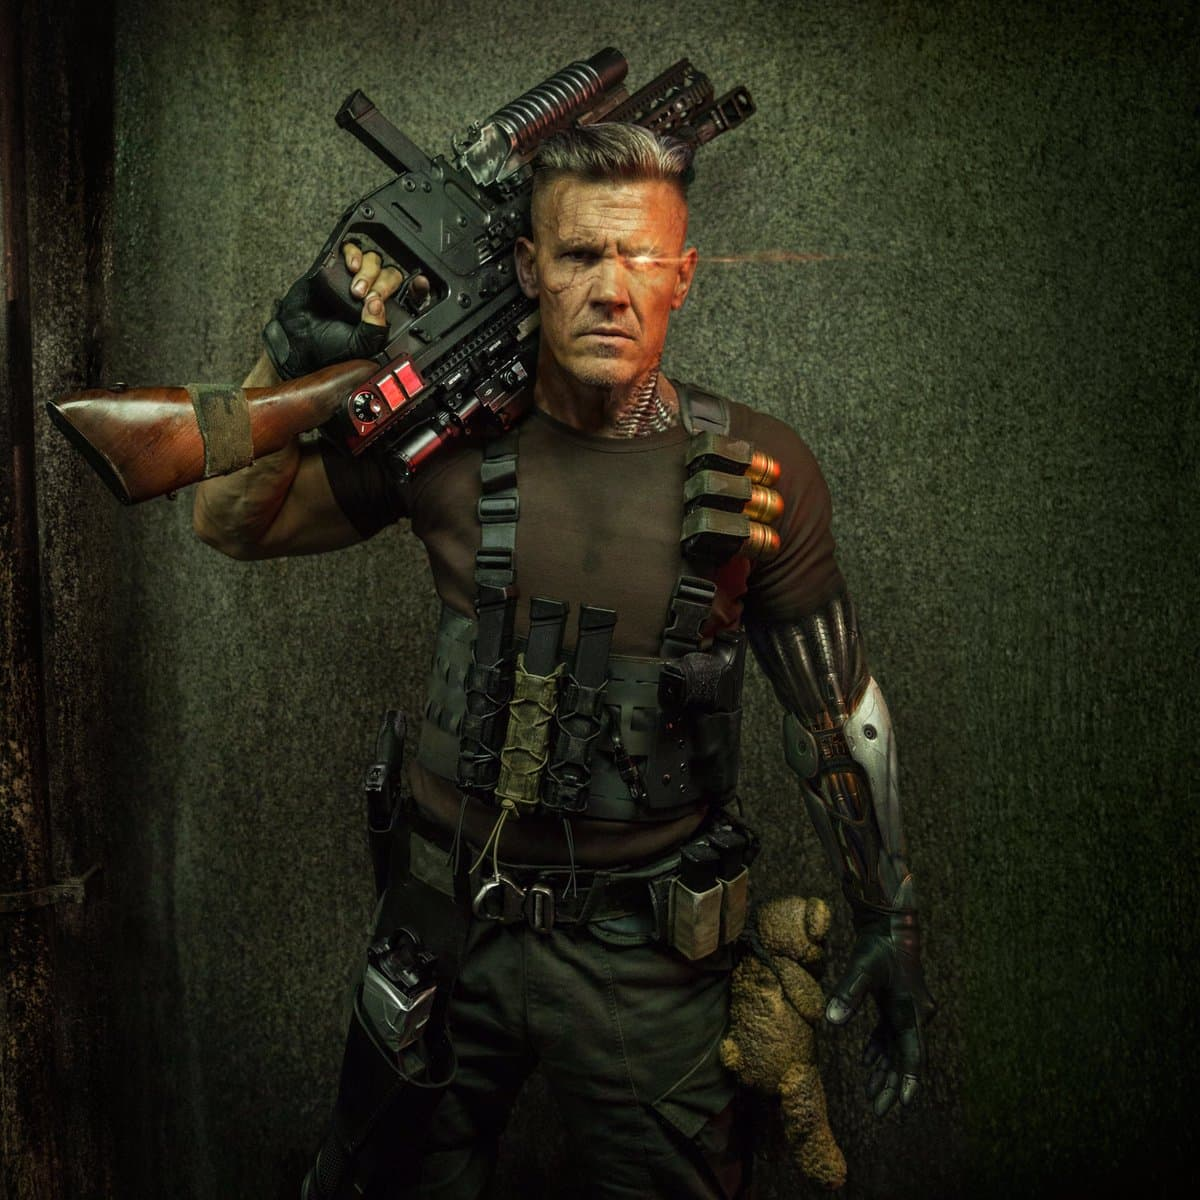 Take A Look At Josh Brolin's Cable